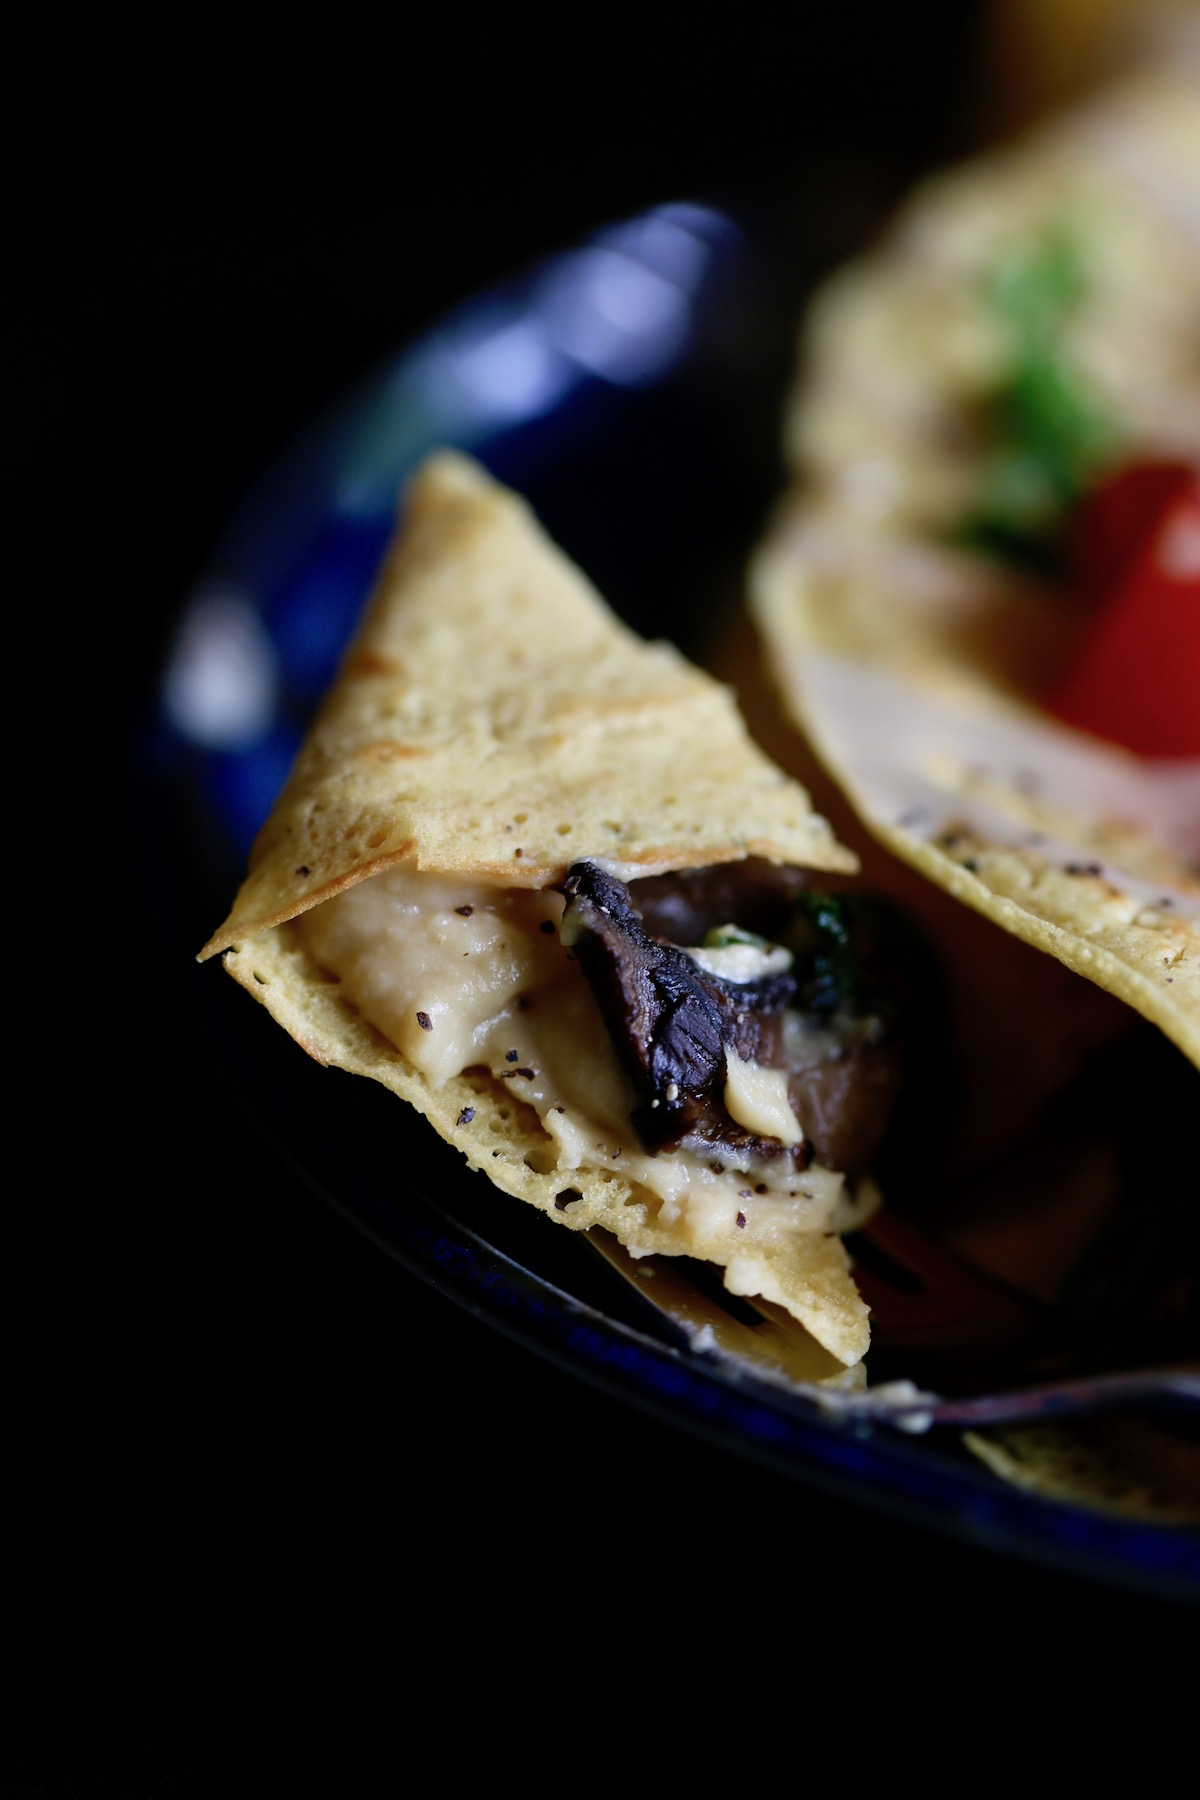 a bite of savory chickpea flour crepe filled with hummus and mushrooms